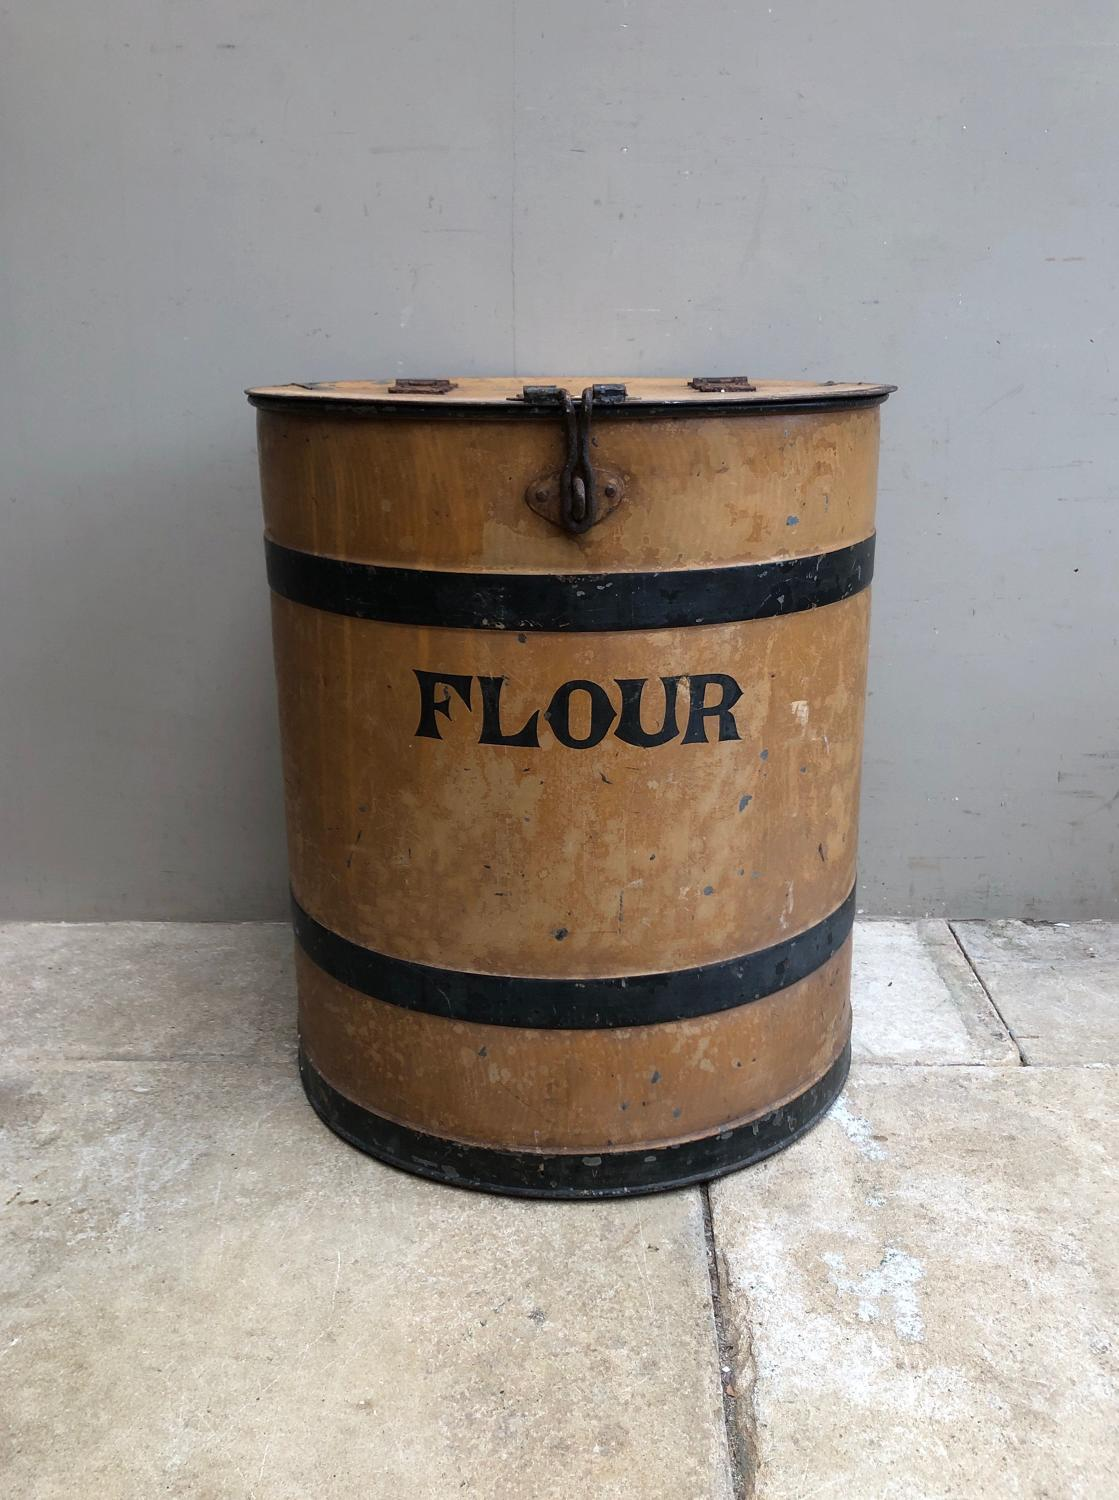 Superb Victorian Toleware Flour Bin - Great Original Condition